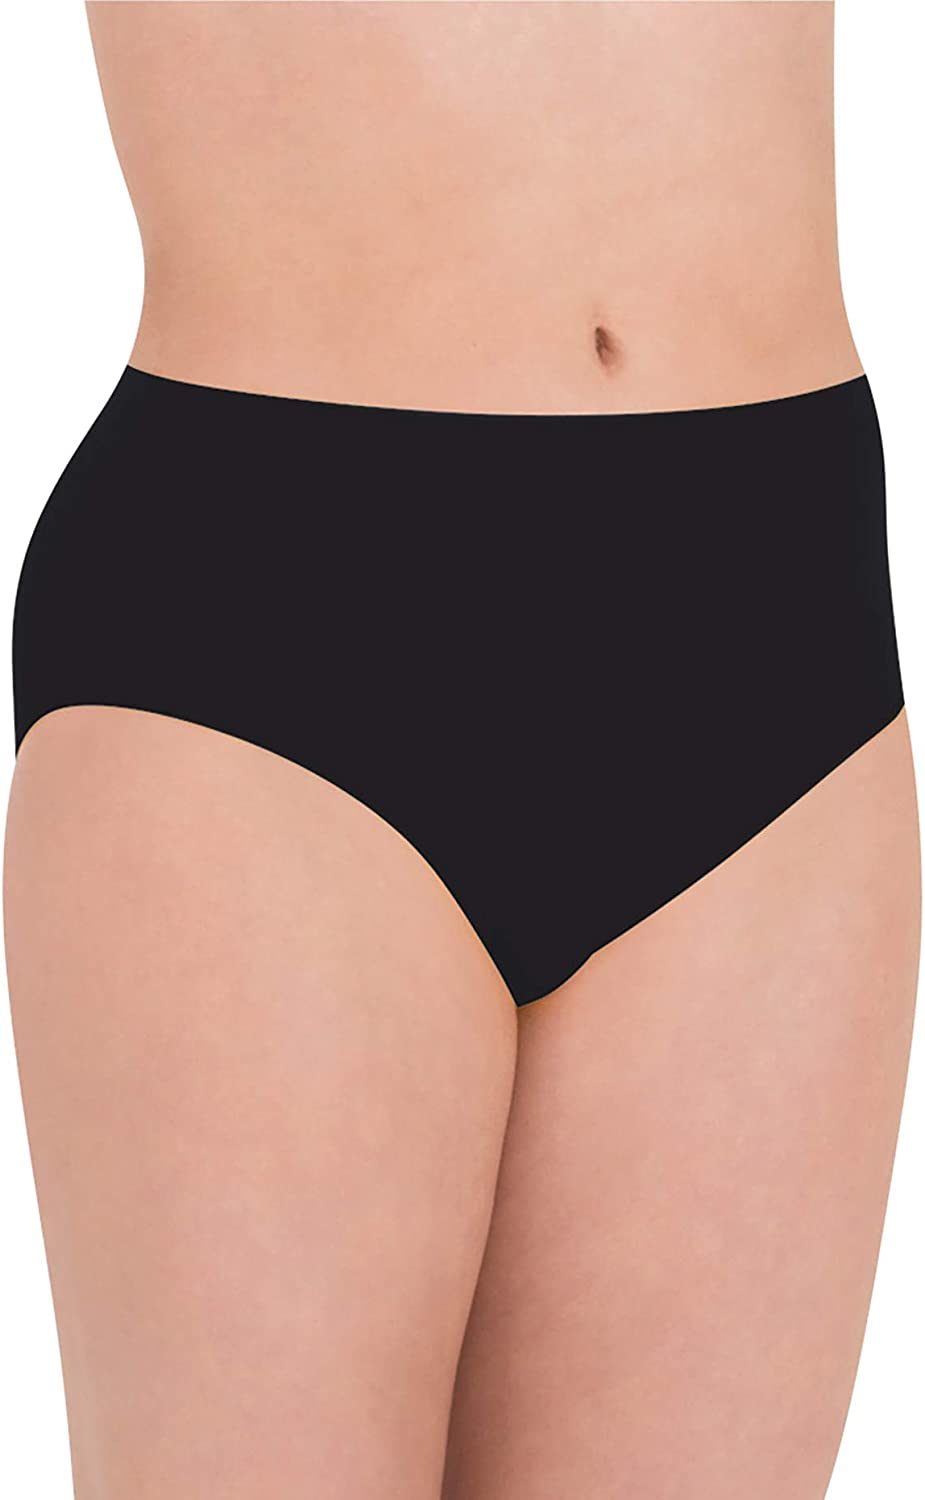 Bodywrappers Women's Athletic Brief